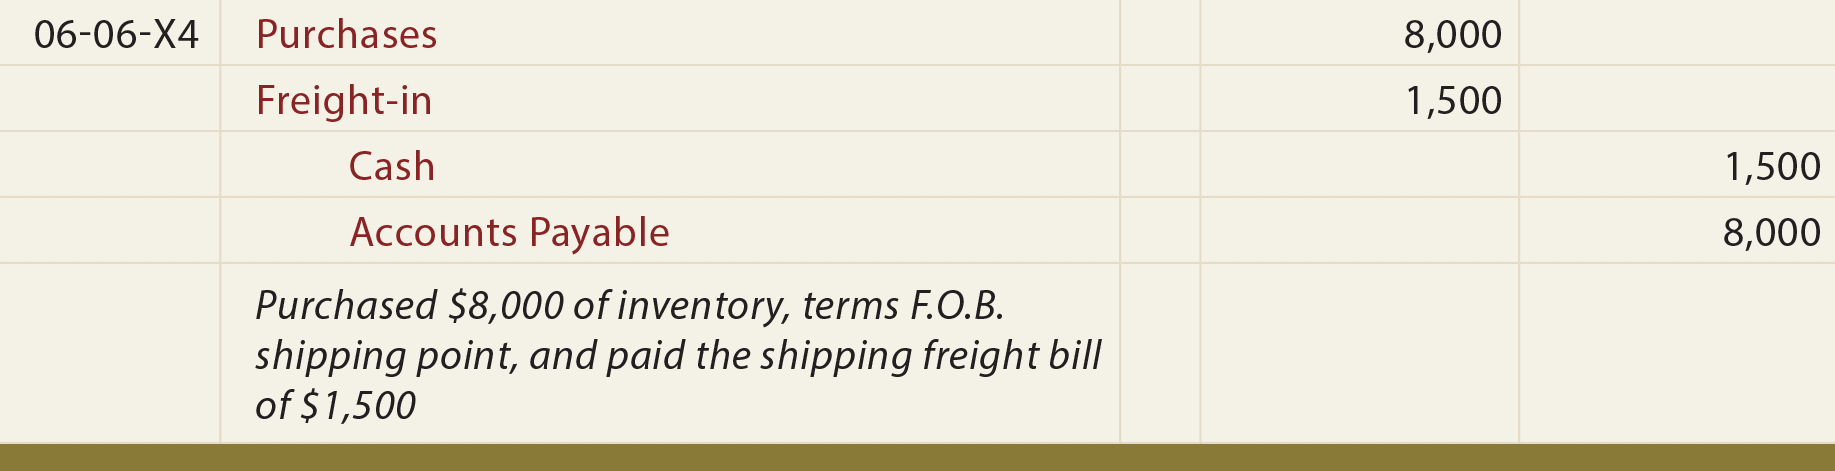 F.O.B. Shipping Point Seller's General Journal Entry